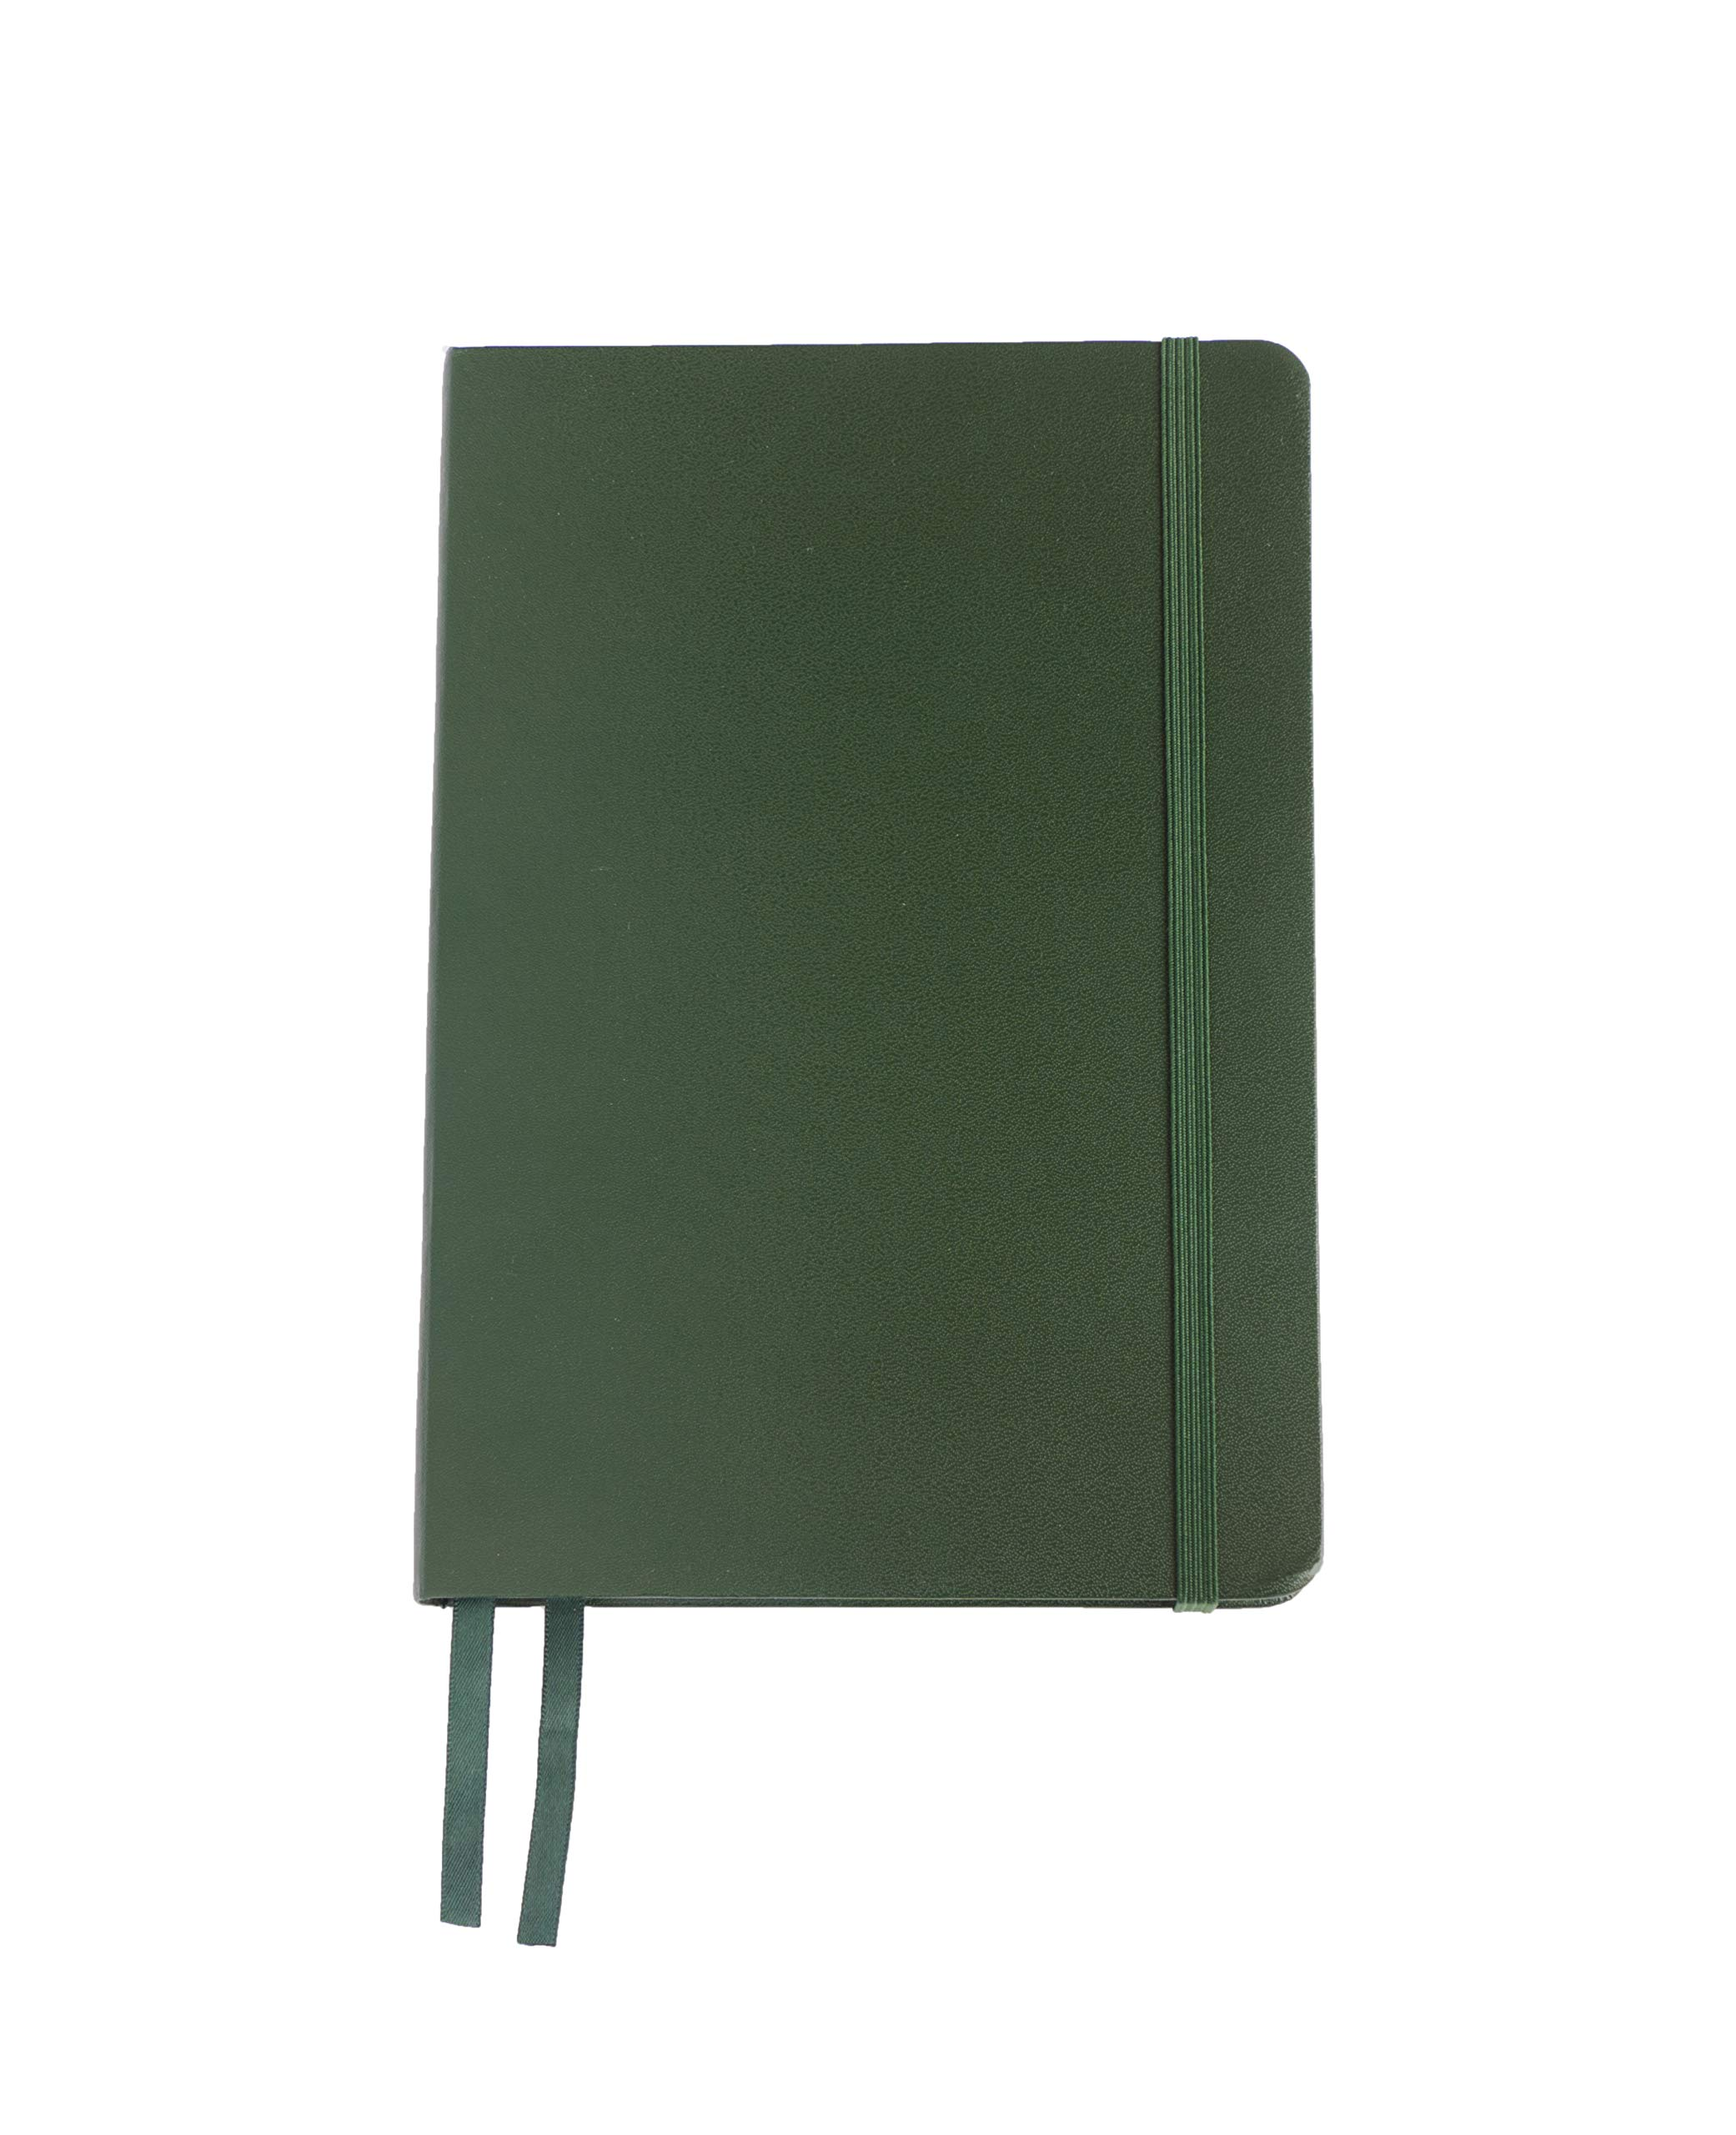 Sprouted Pig - Dotted Journal Notebook, 220 pages, Hard Cover Vegan Leather, Inner Pocket, Quality Paper - 100 gsm (Green)